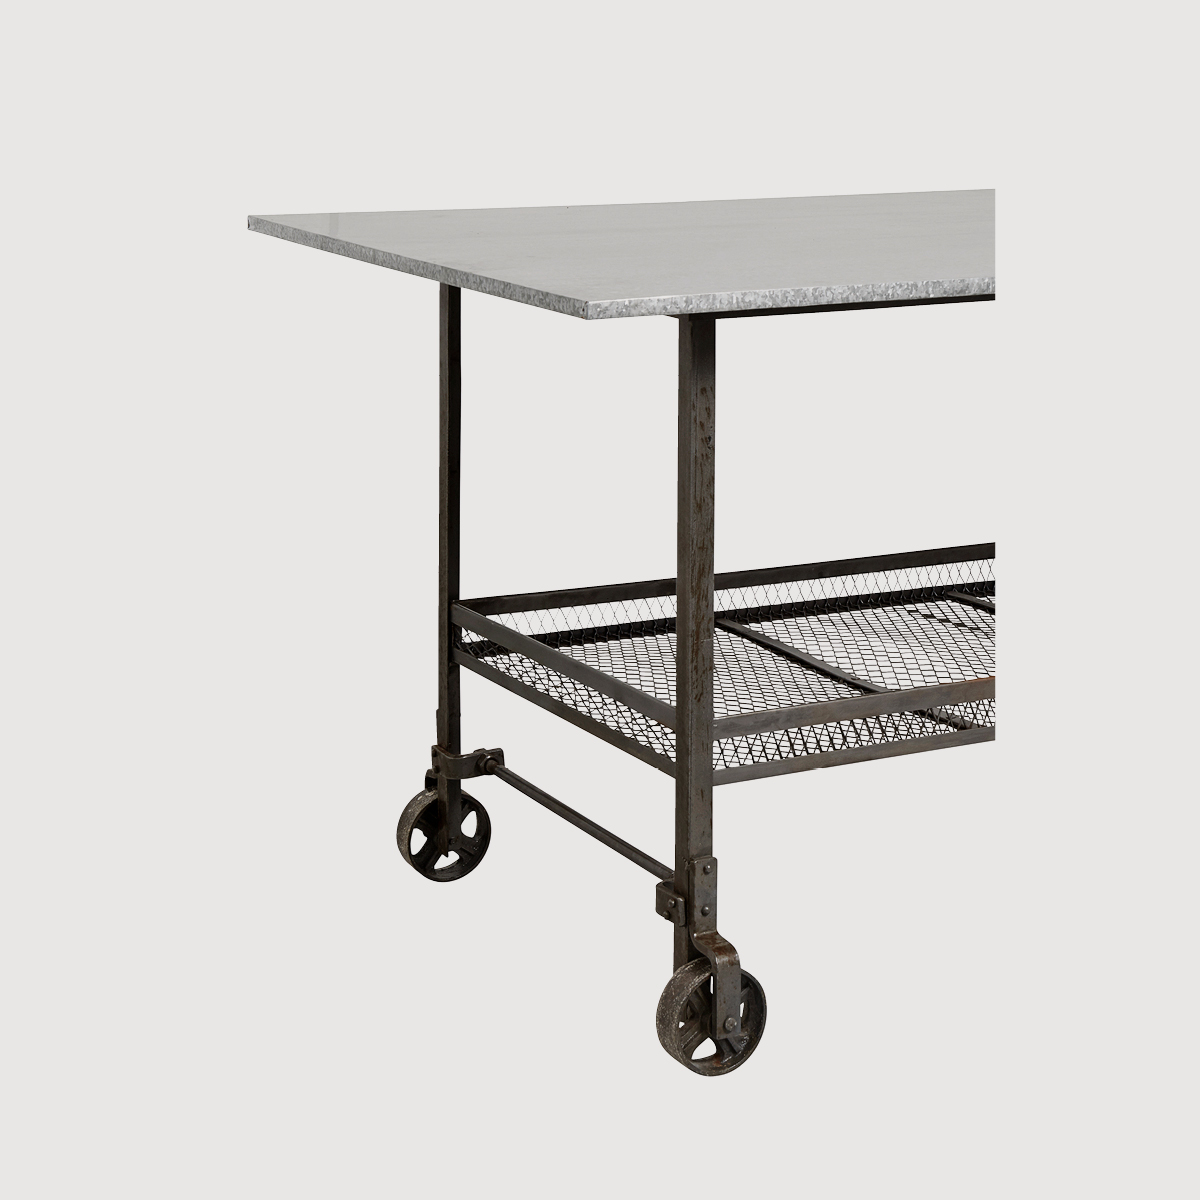 Grover Trolley Table on Wheels gallery image